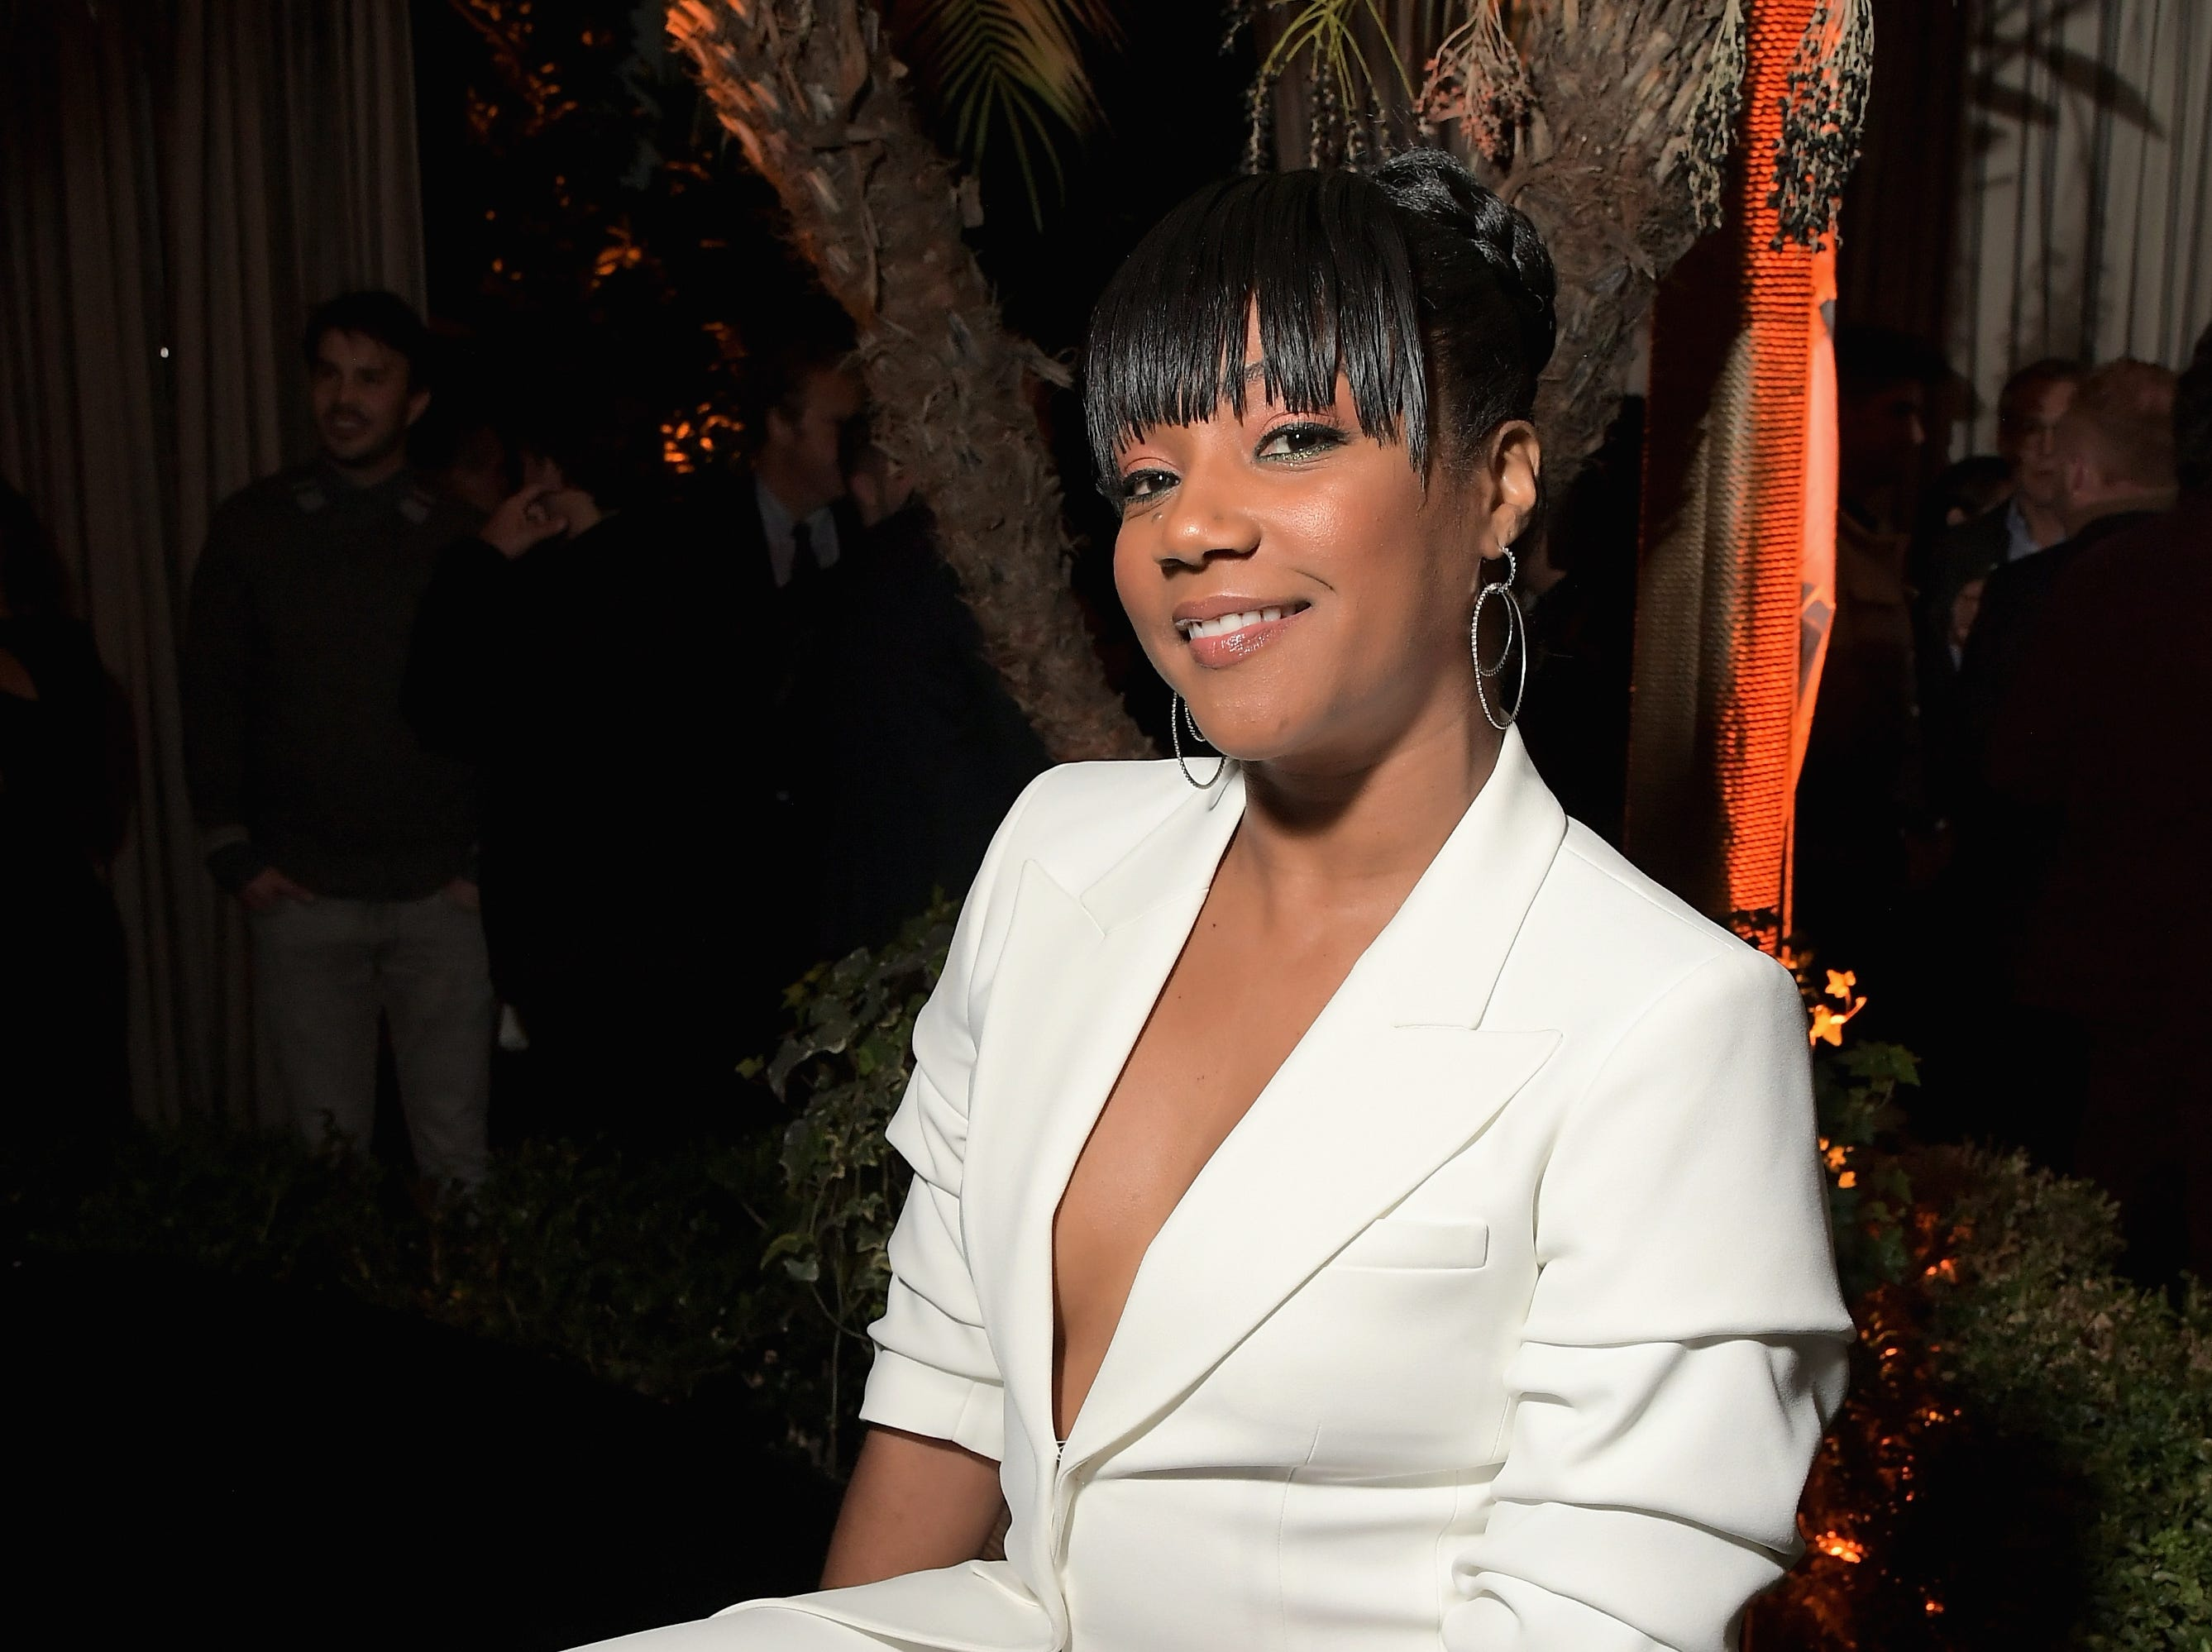 Hollywood is kicking off Oscars week early with celebrations. Tiffany Haddish attends the Cadillac Oscar Week Celebration at Chateau Marmont on Thursday.